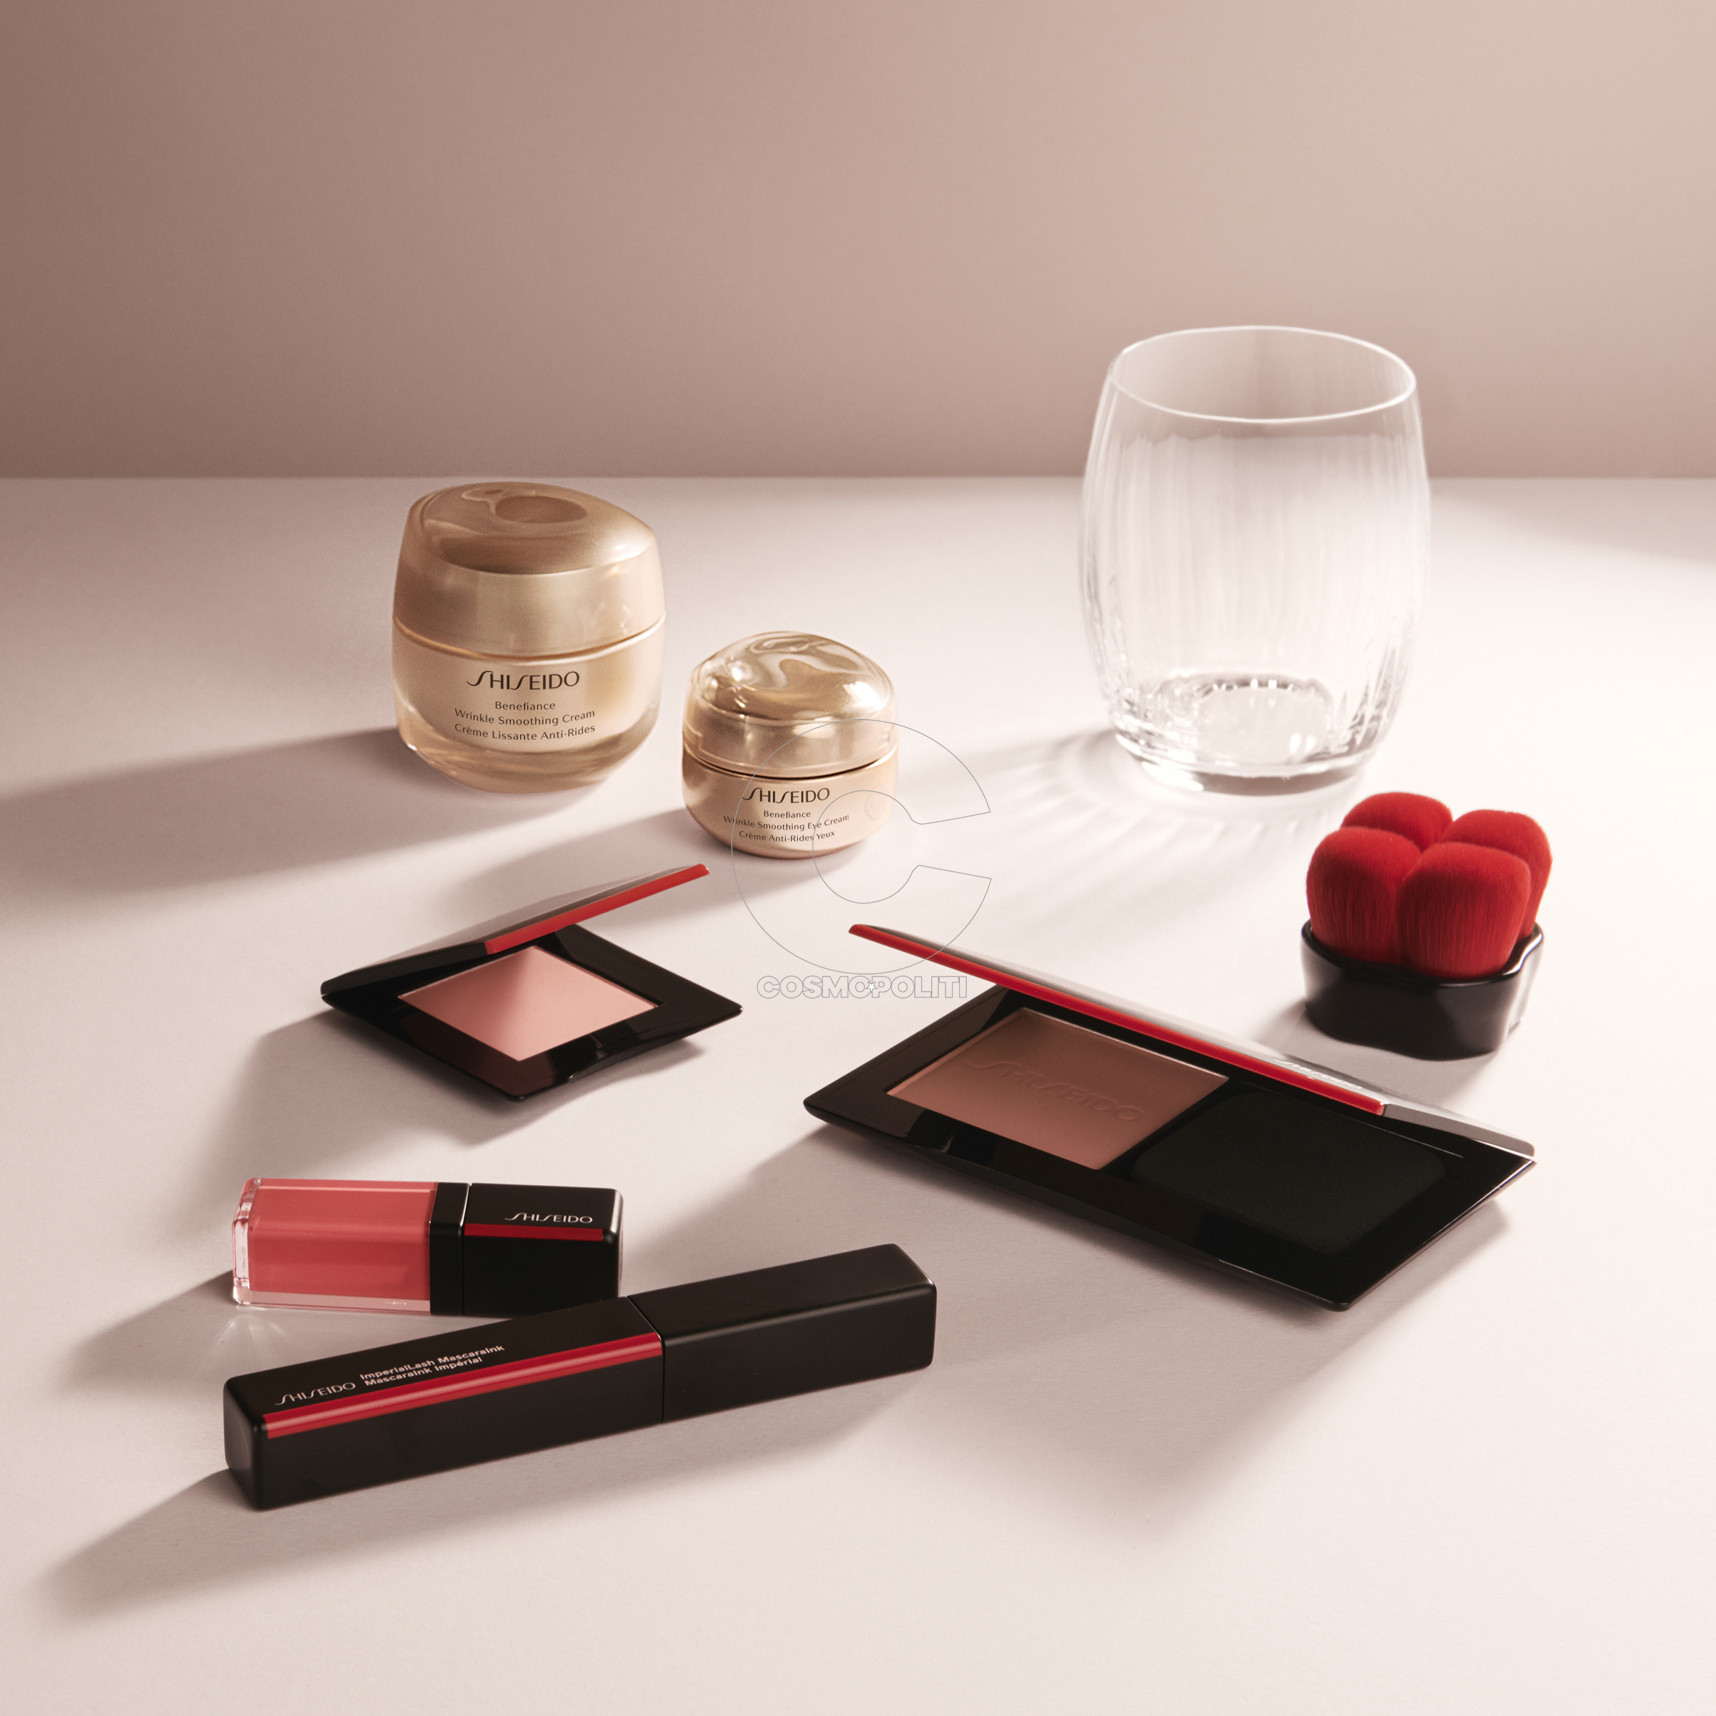 Shiseido 2020 - TUTO 2_Fresh look_Creative visual_1x1 (1)